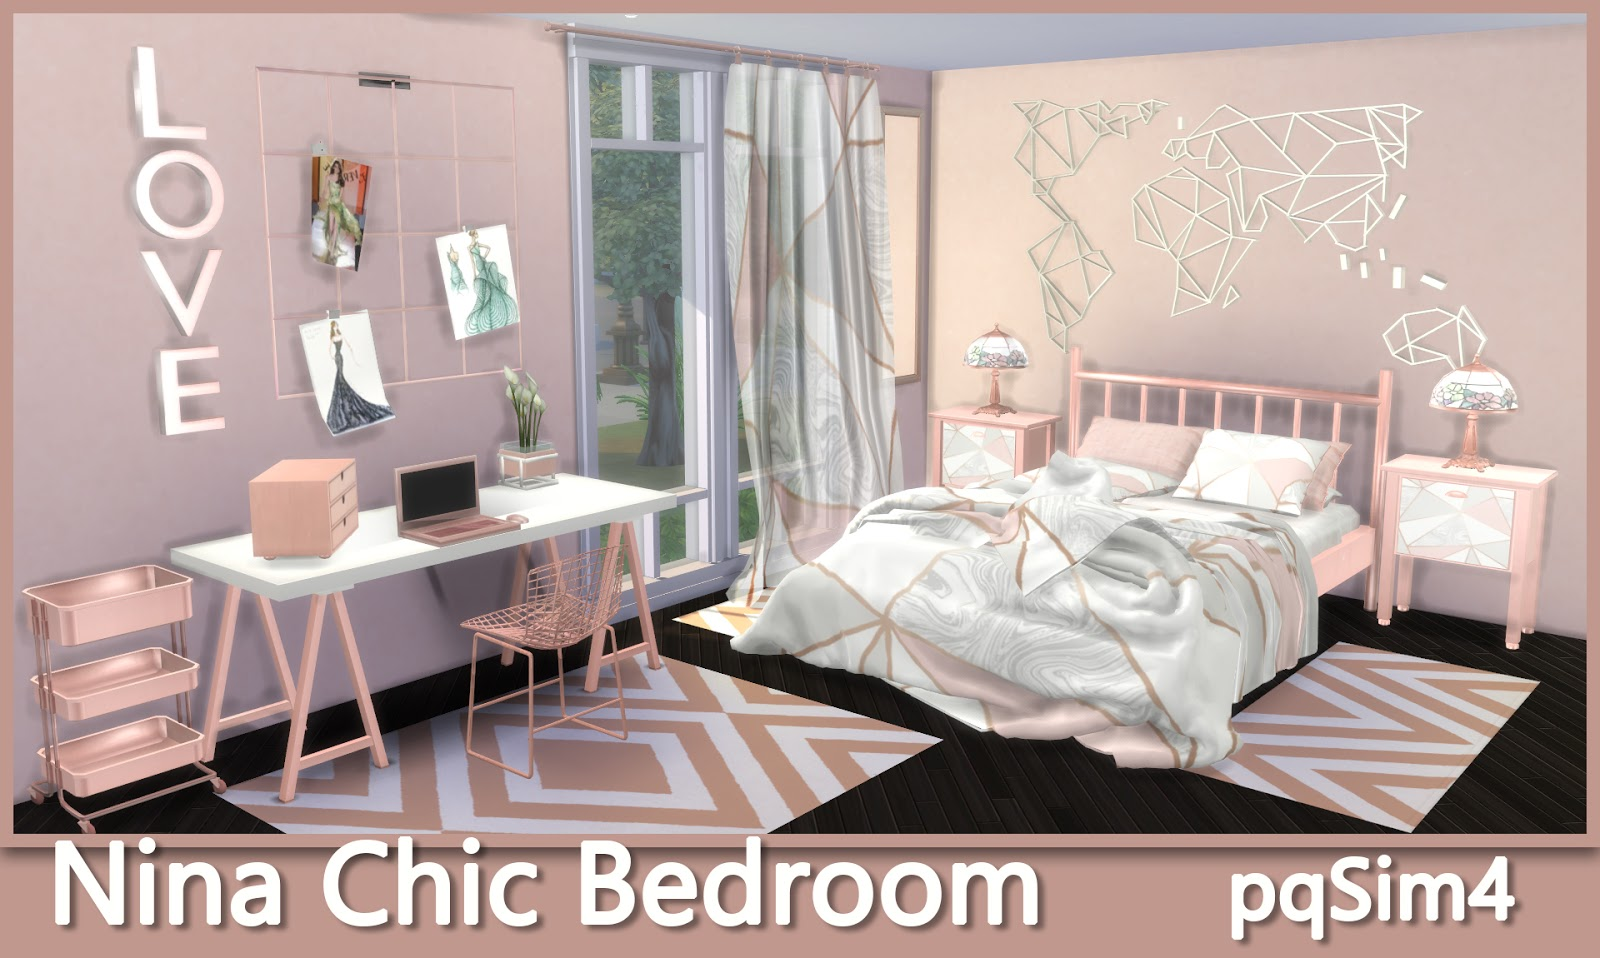 Sims 4 CC\'s - The Best: NINA CHIC BEDROOM by pqsim4